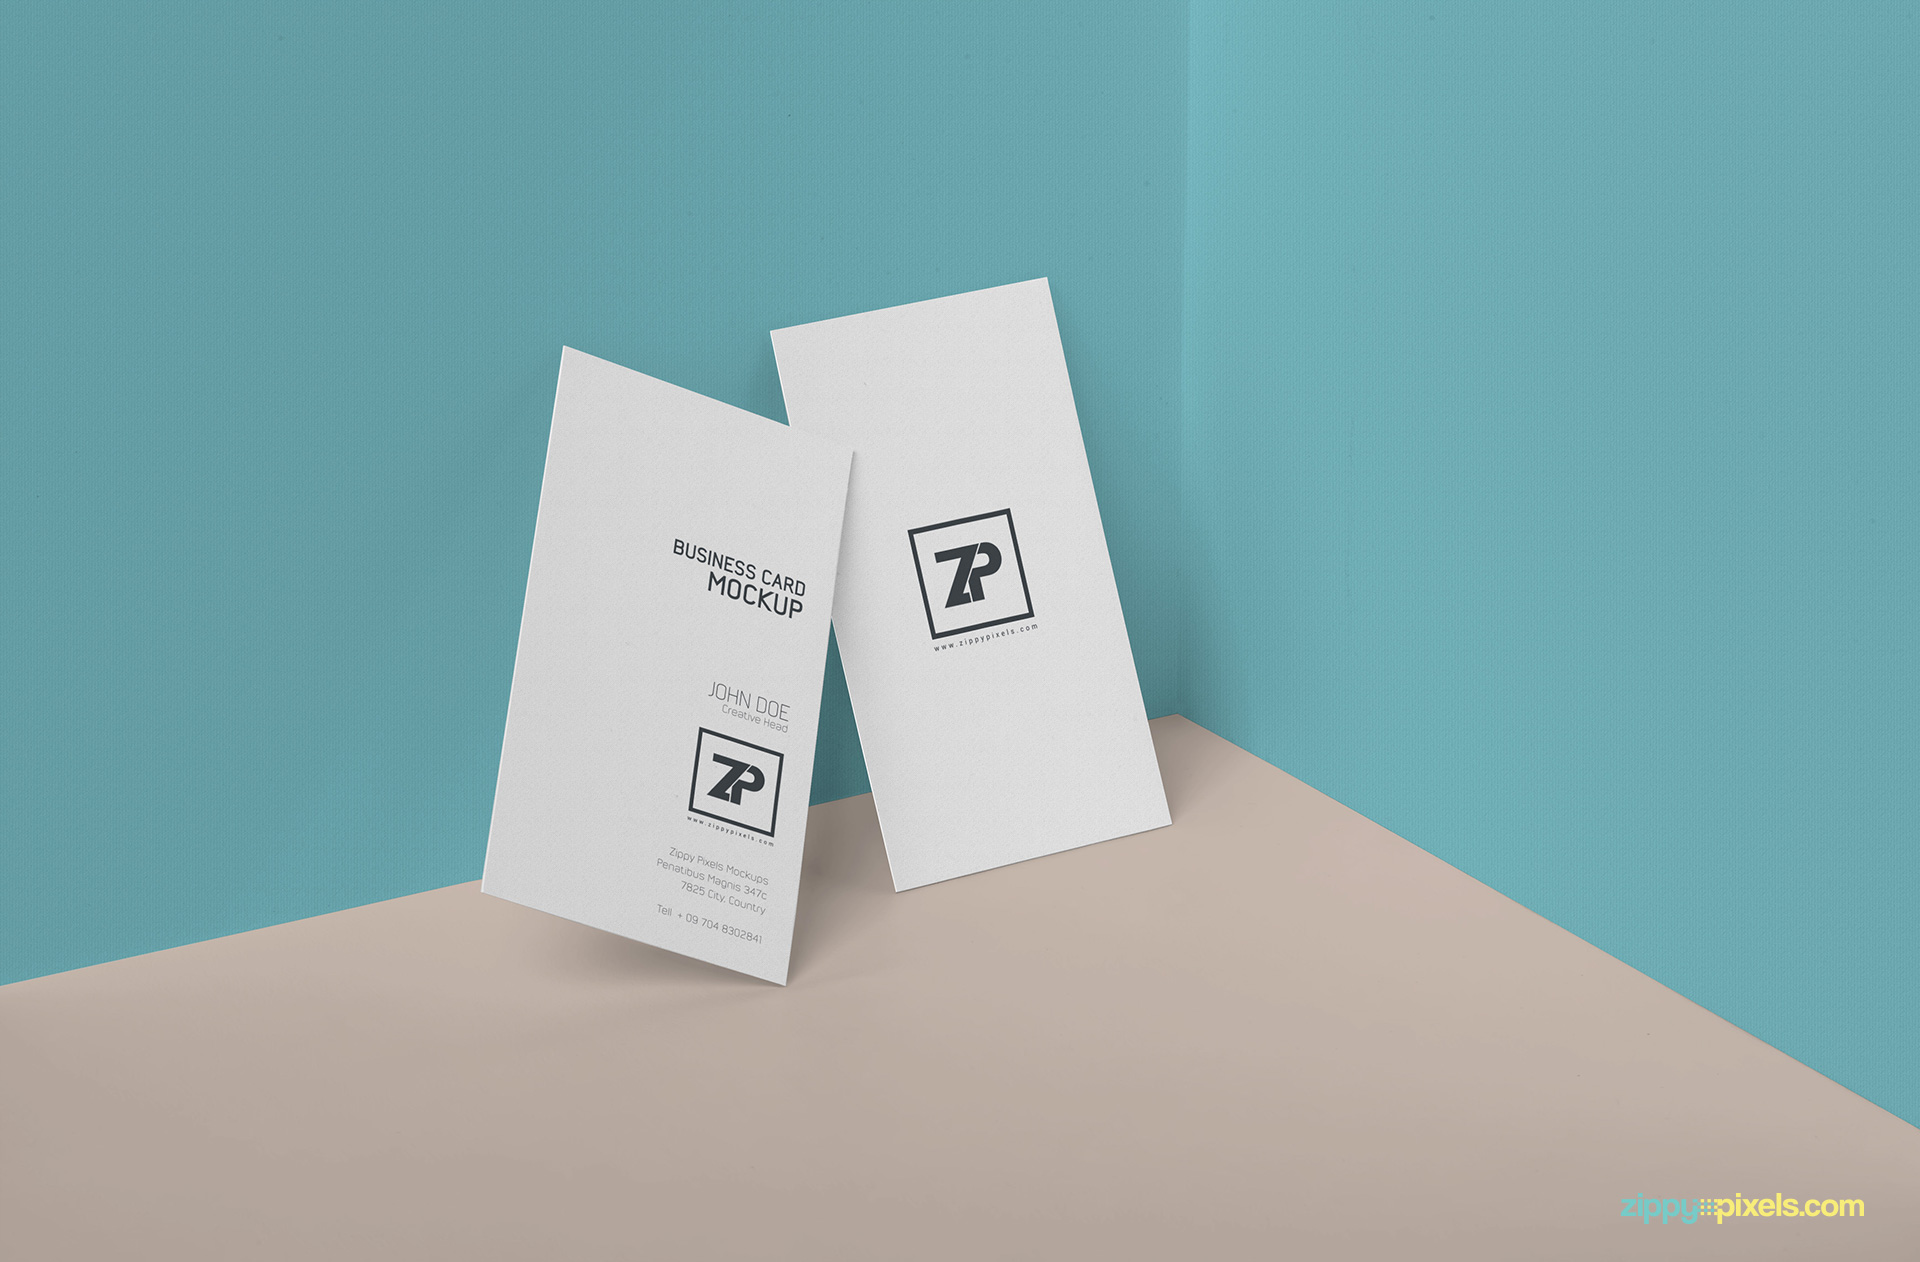 01-free-business-card-mockup-PSD-824x542